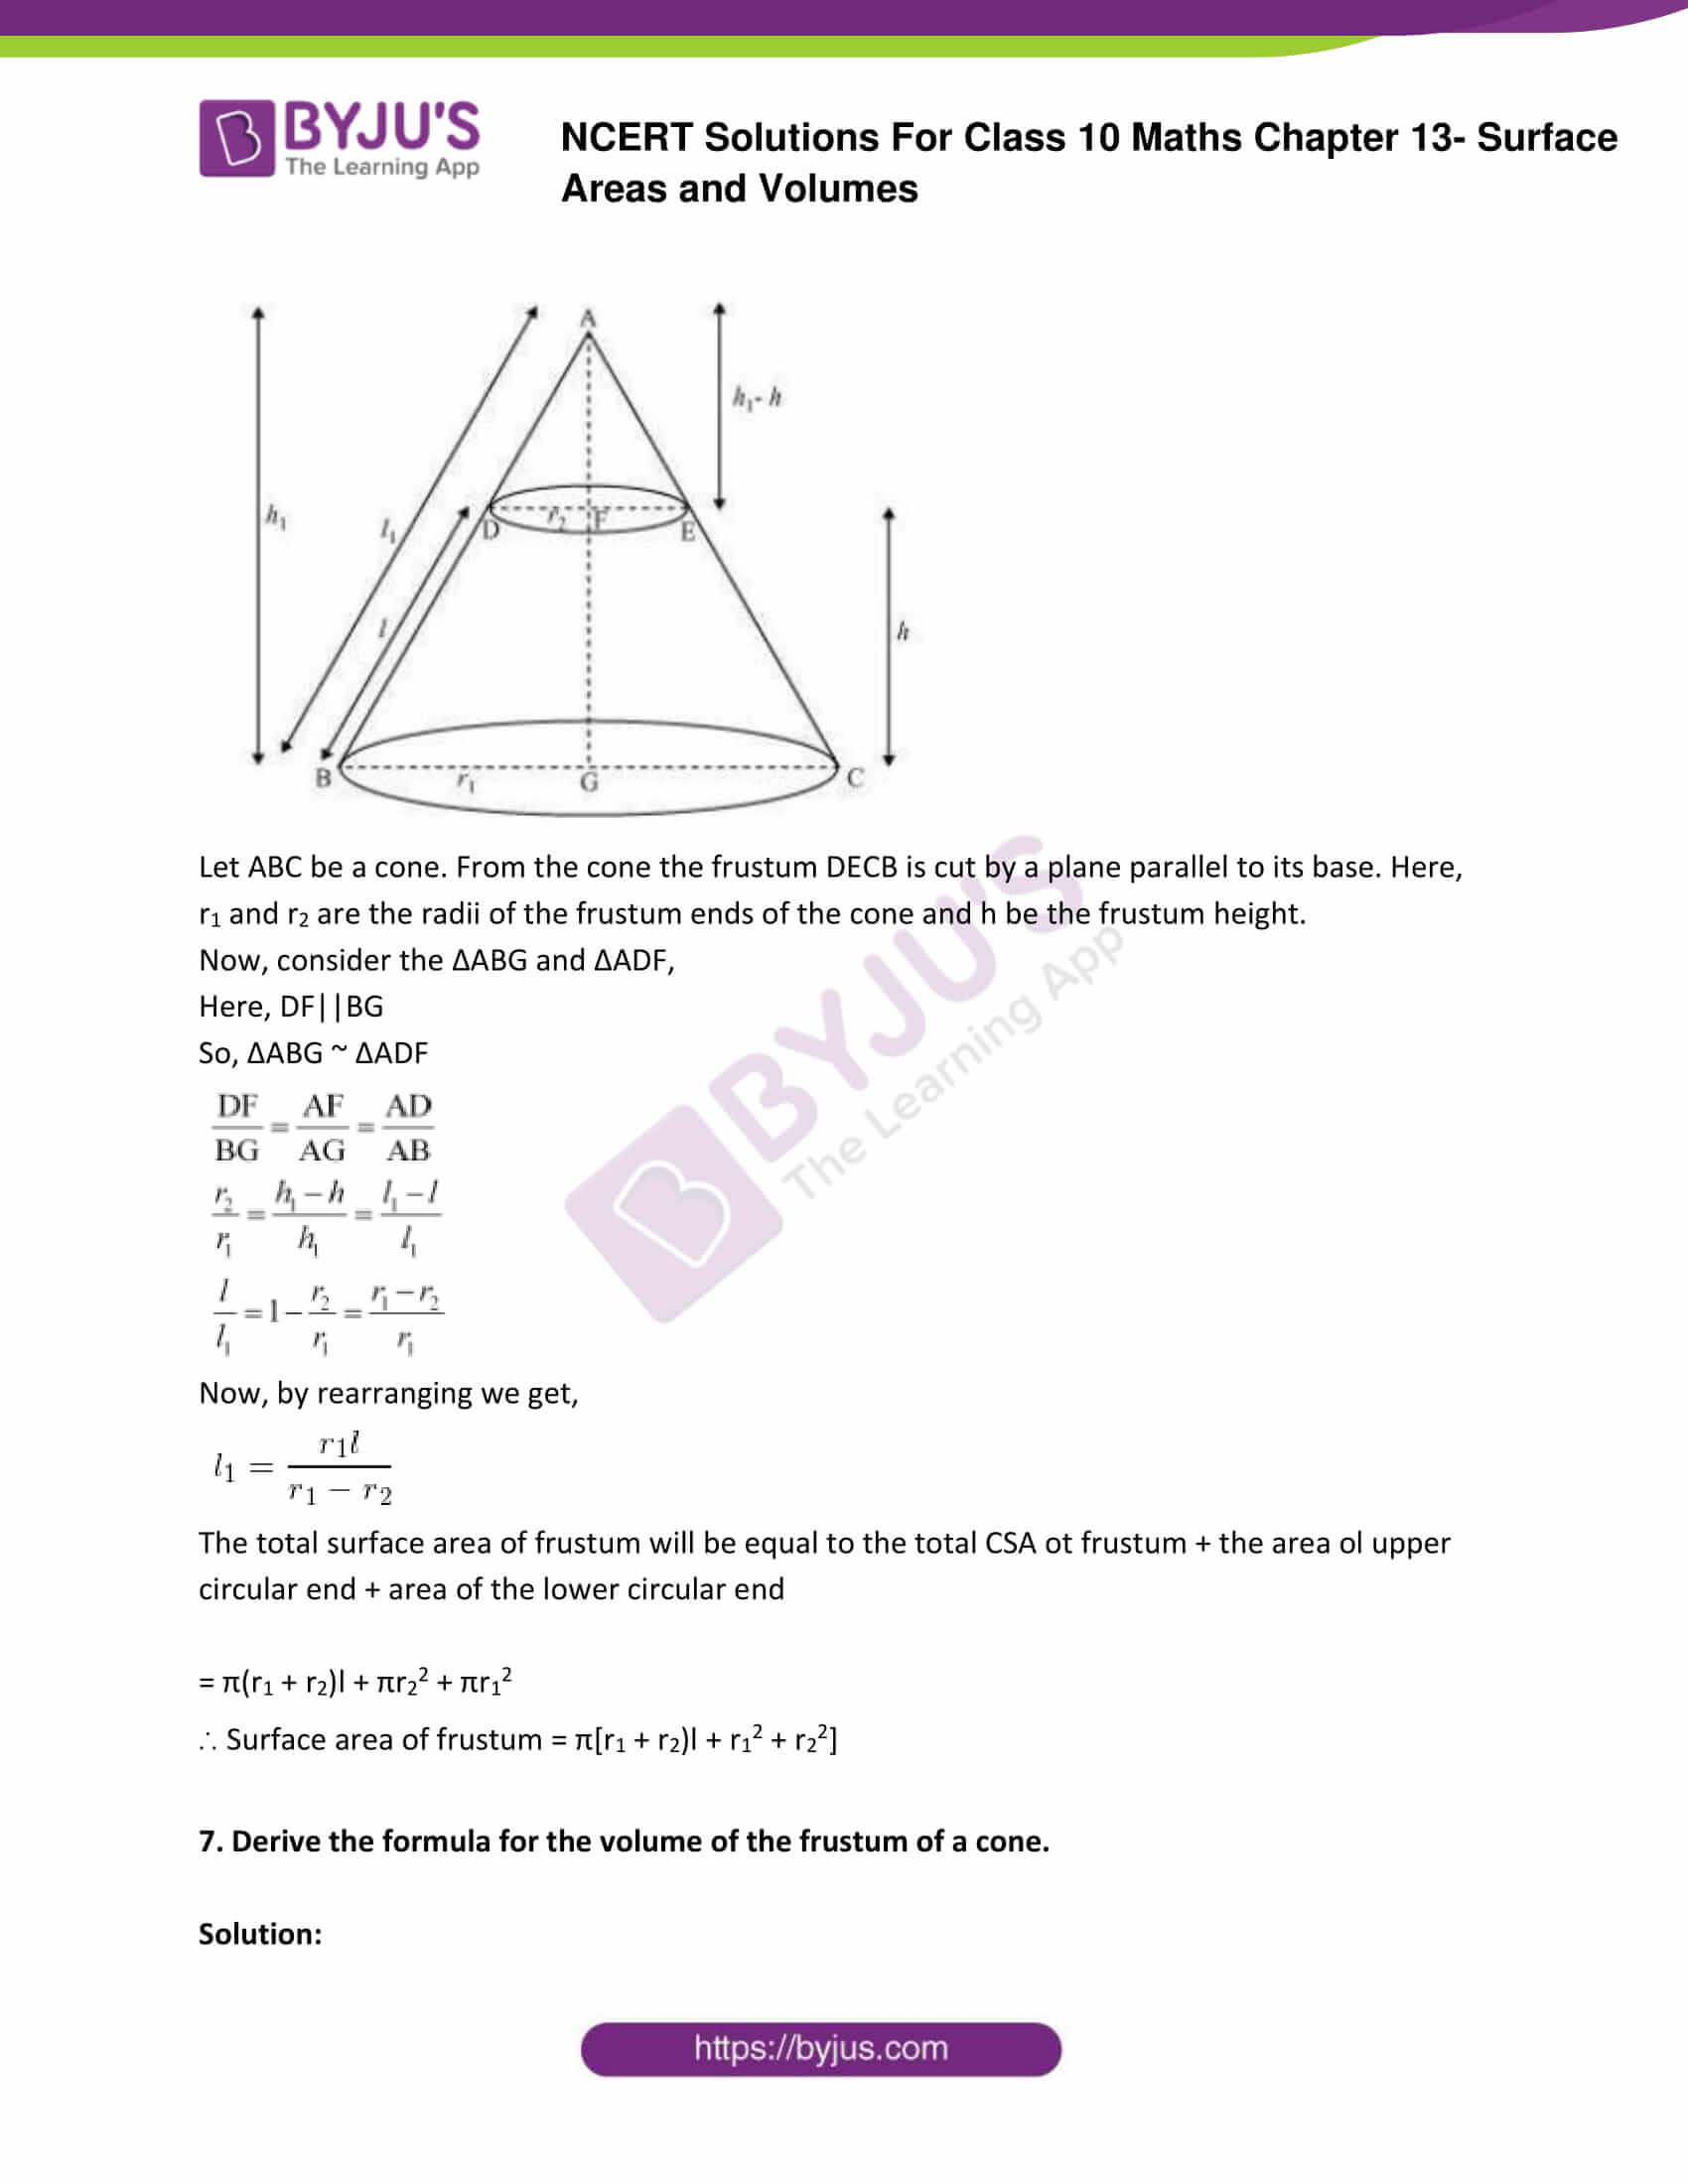 NCERT Solutions Class 10 Maths Chapter 13 Surface Areas and Volumes Part 29